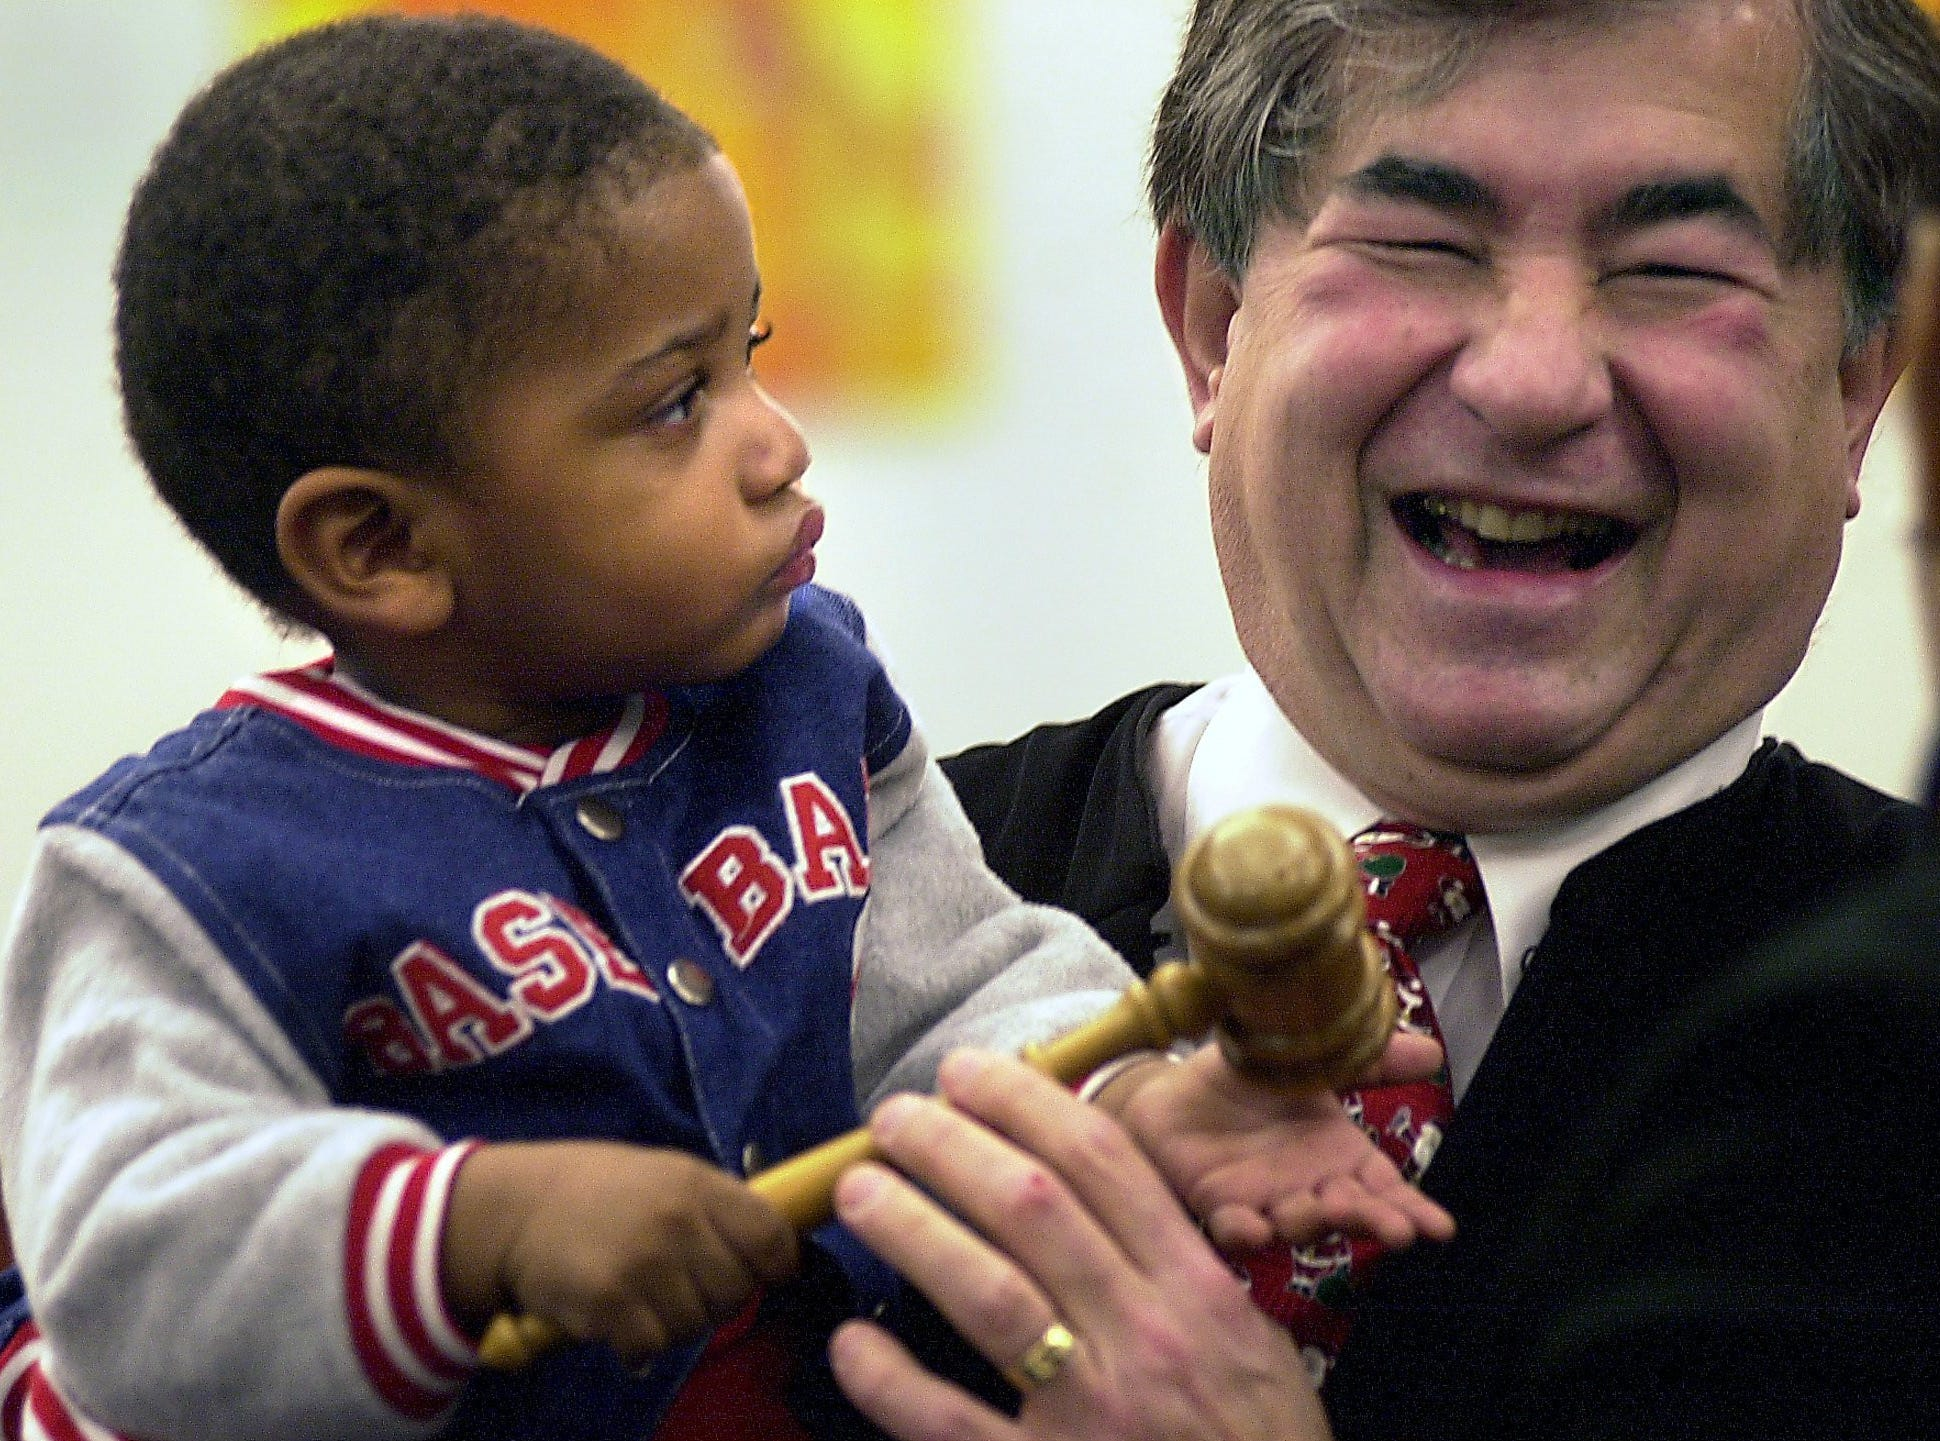 Judge George Economy laughs as he tries to get his gavel back Dec. 23, 2003, from Martel James, 18 months after Economy finalized Martel's adoption by his grandmother, Deloris (cq) James in Economy's courtroom.